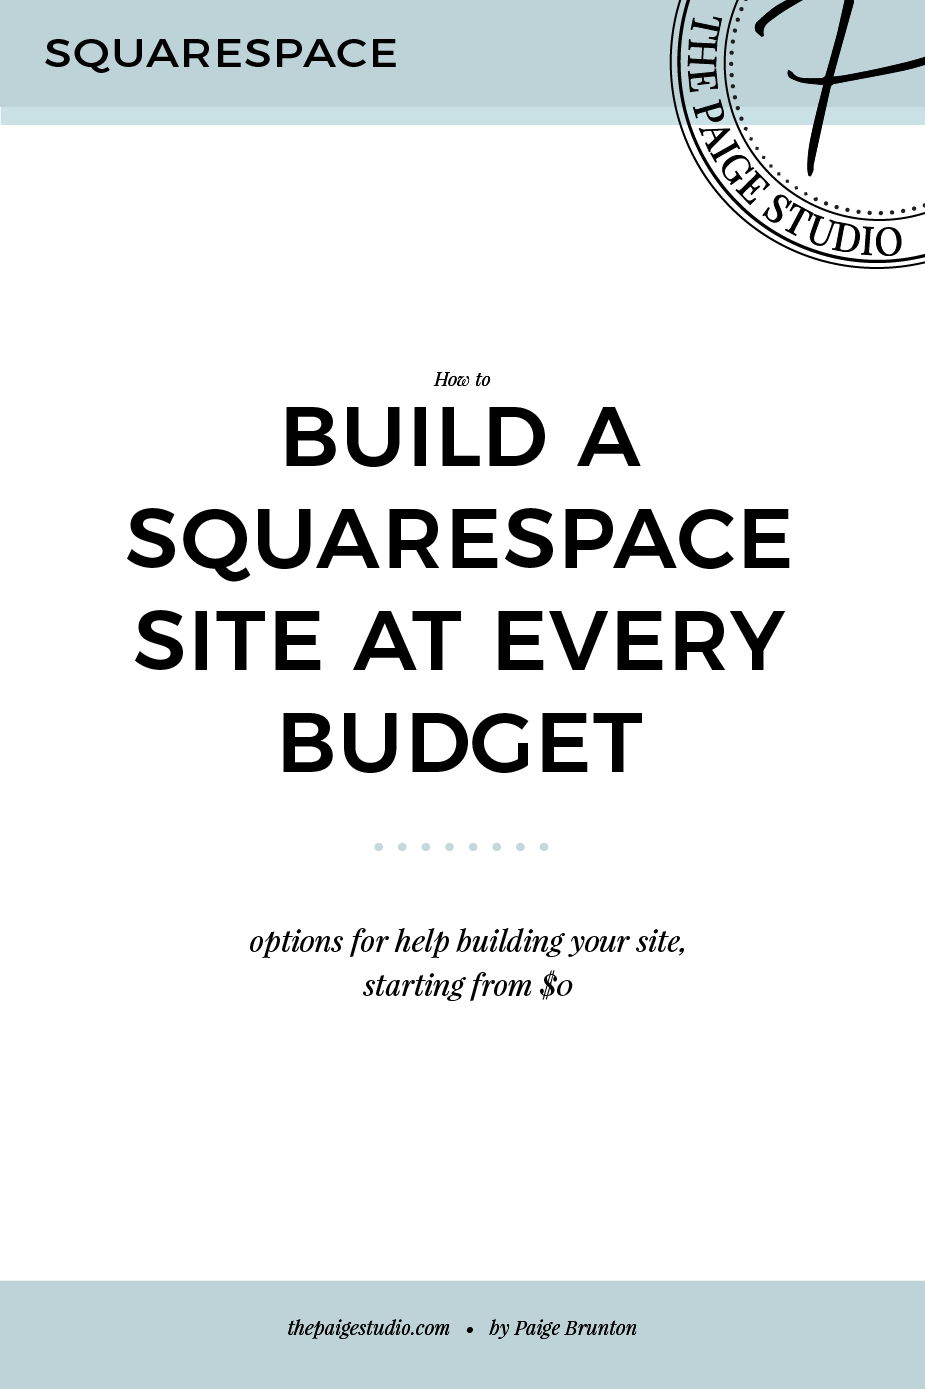 How to build a Squarespace site at every budget Web